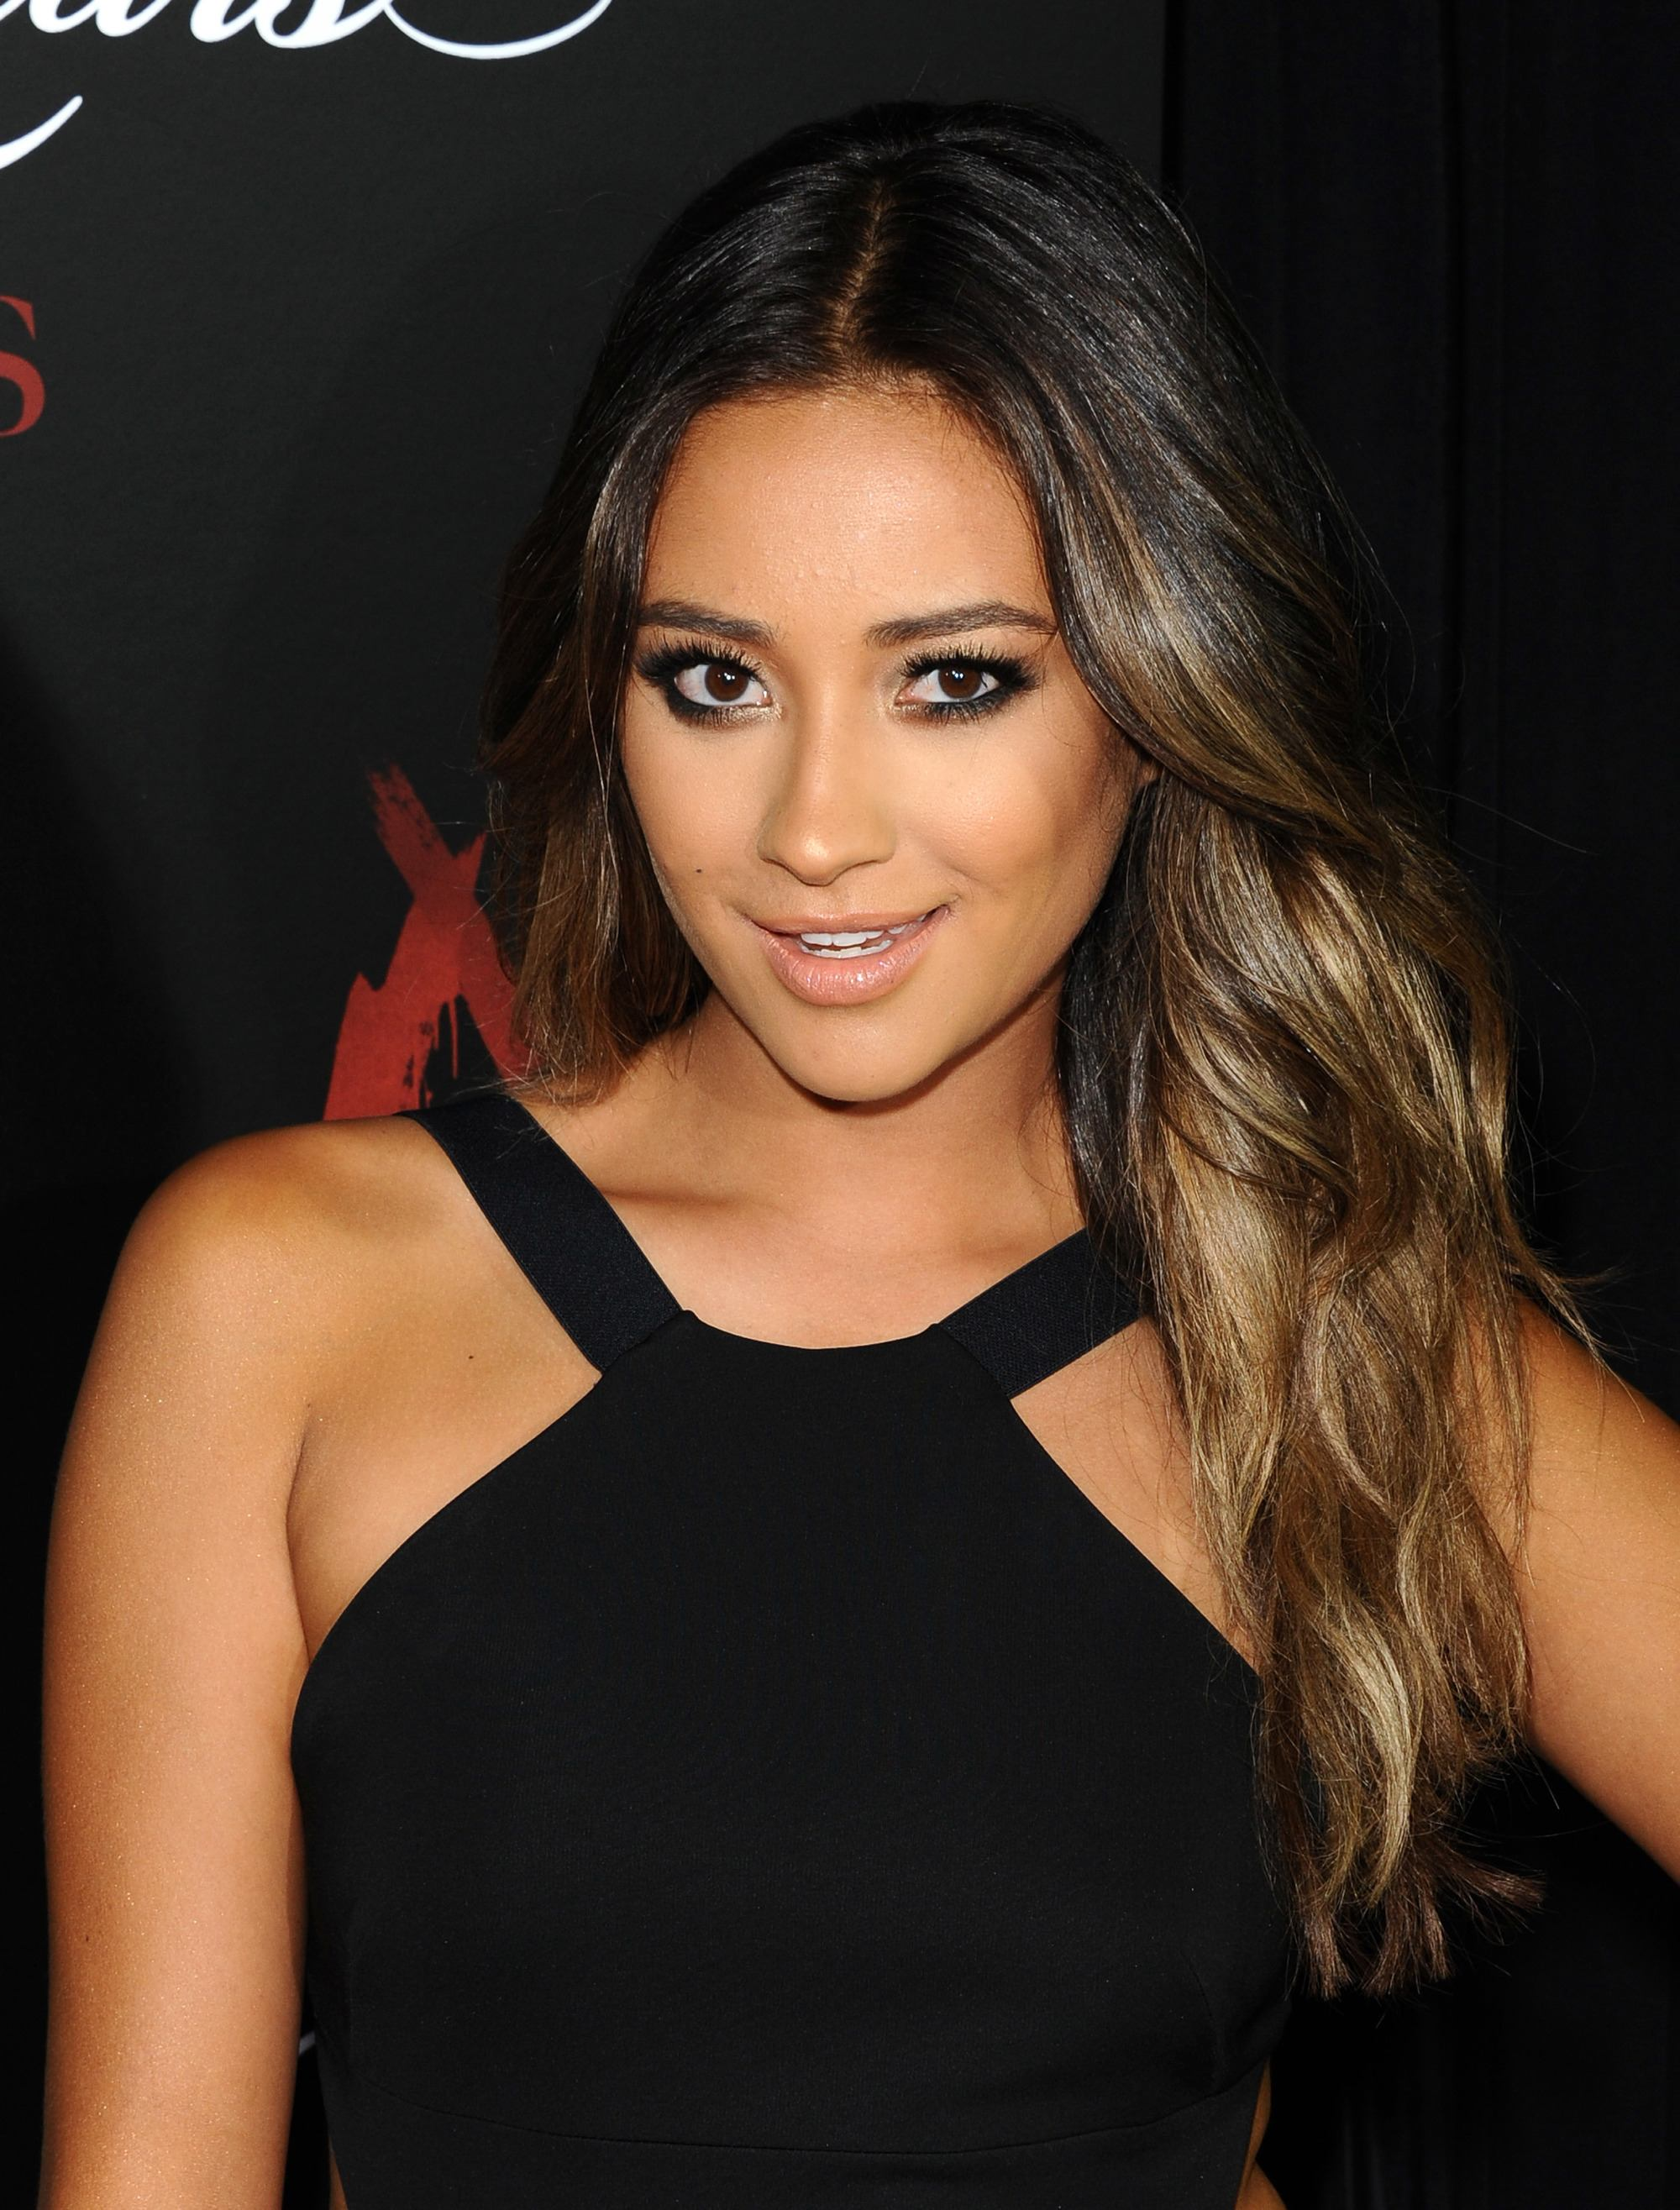 Brown hair with blonde highlights: Shay Mitchell with dark brown hair with highlights, worn in loose curls and swept over one shoulder